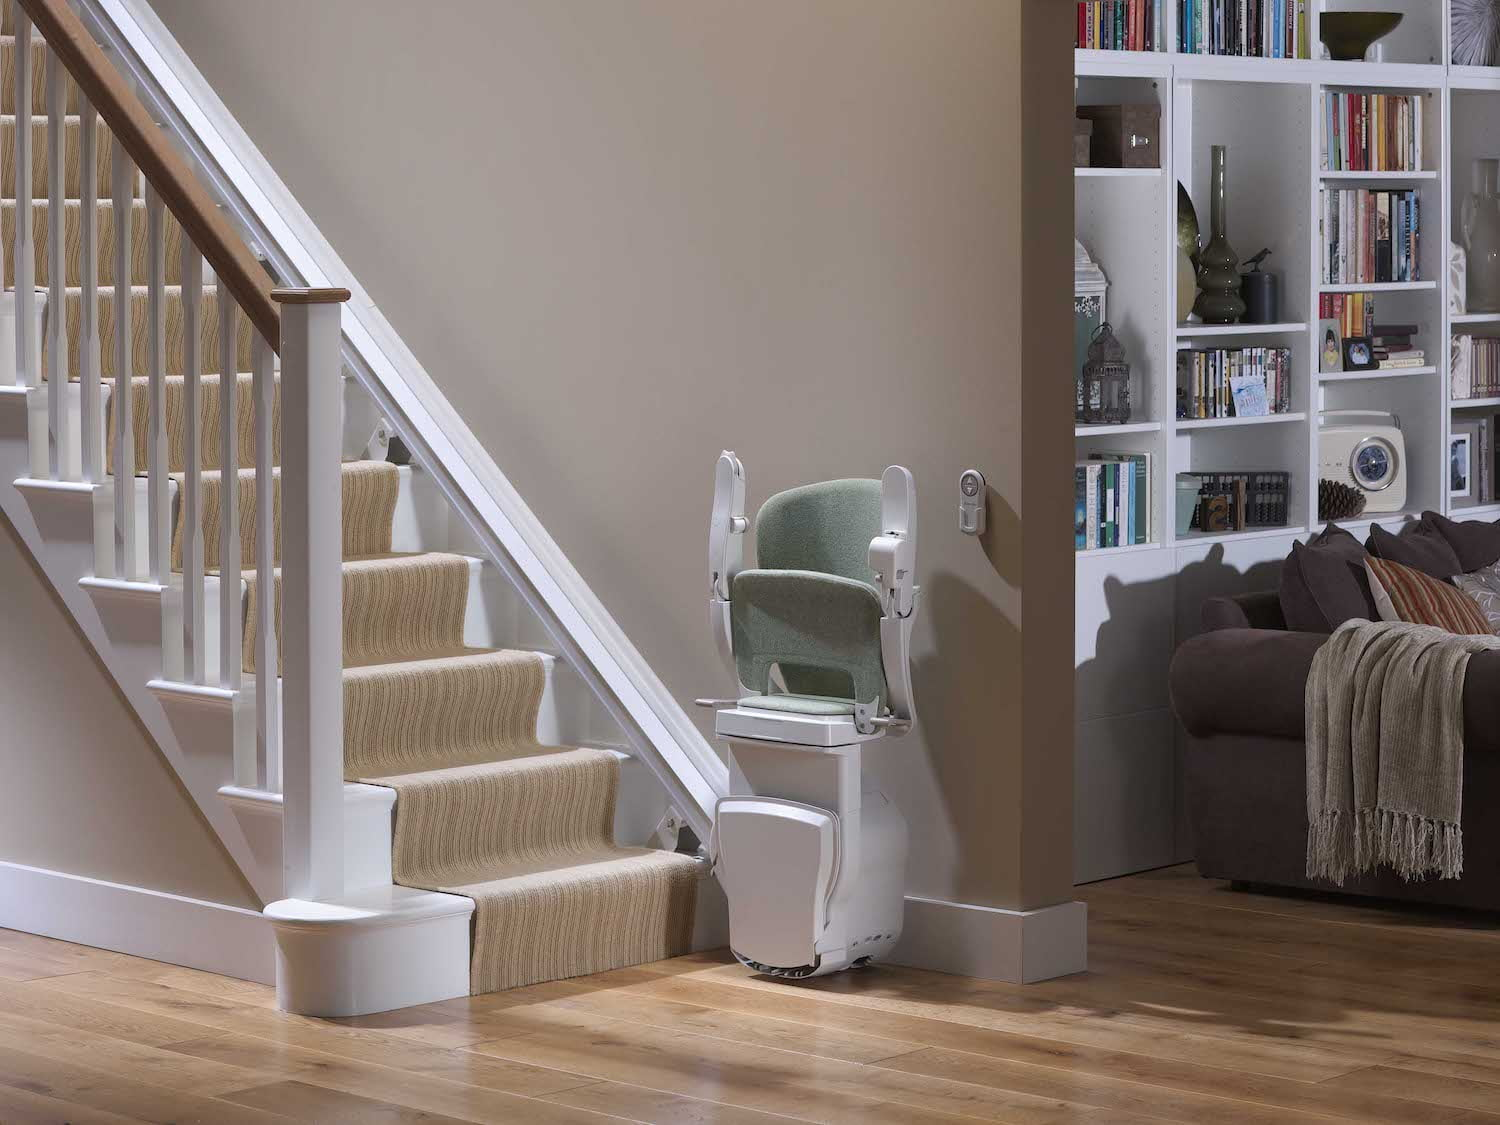 stannah-starla-straight-stairlifts-dolphin-manchester.jpg